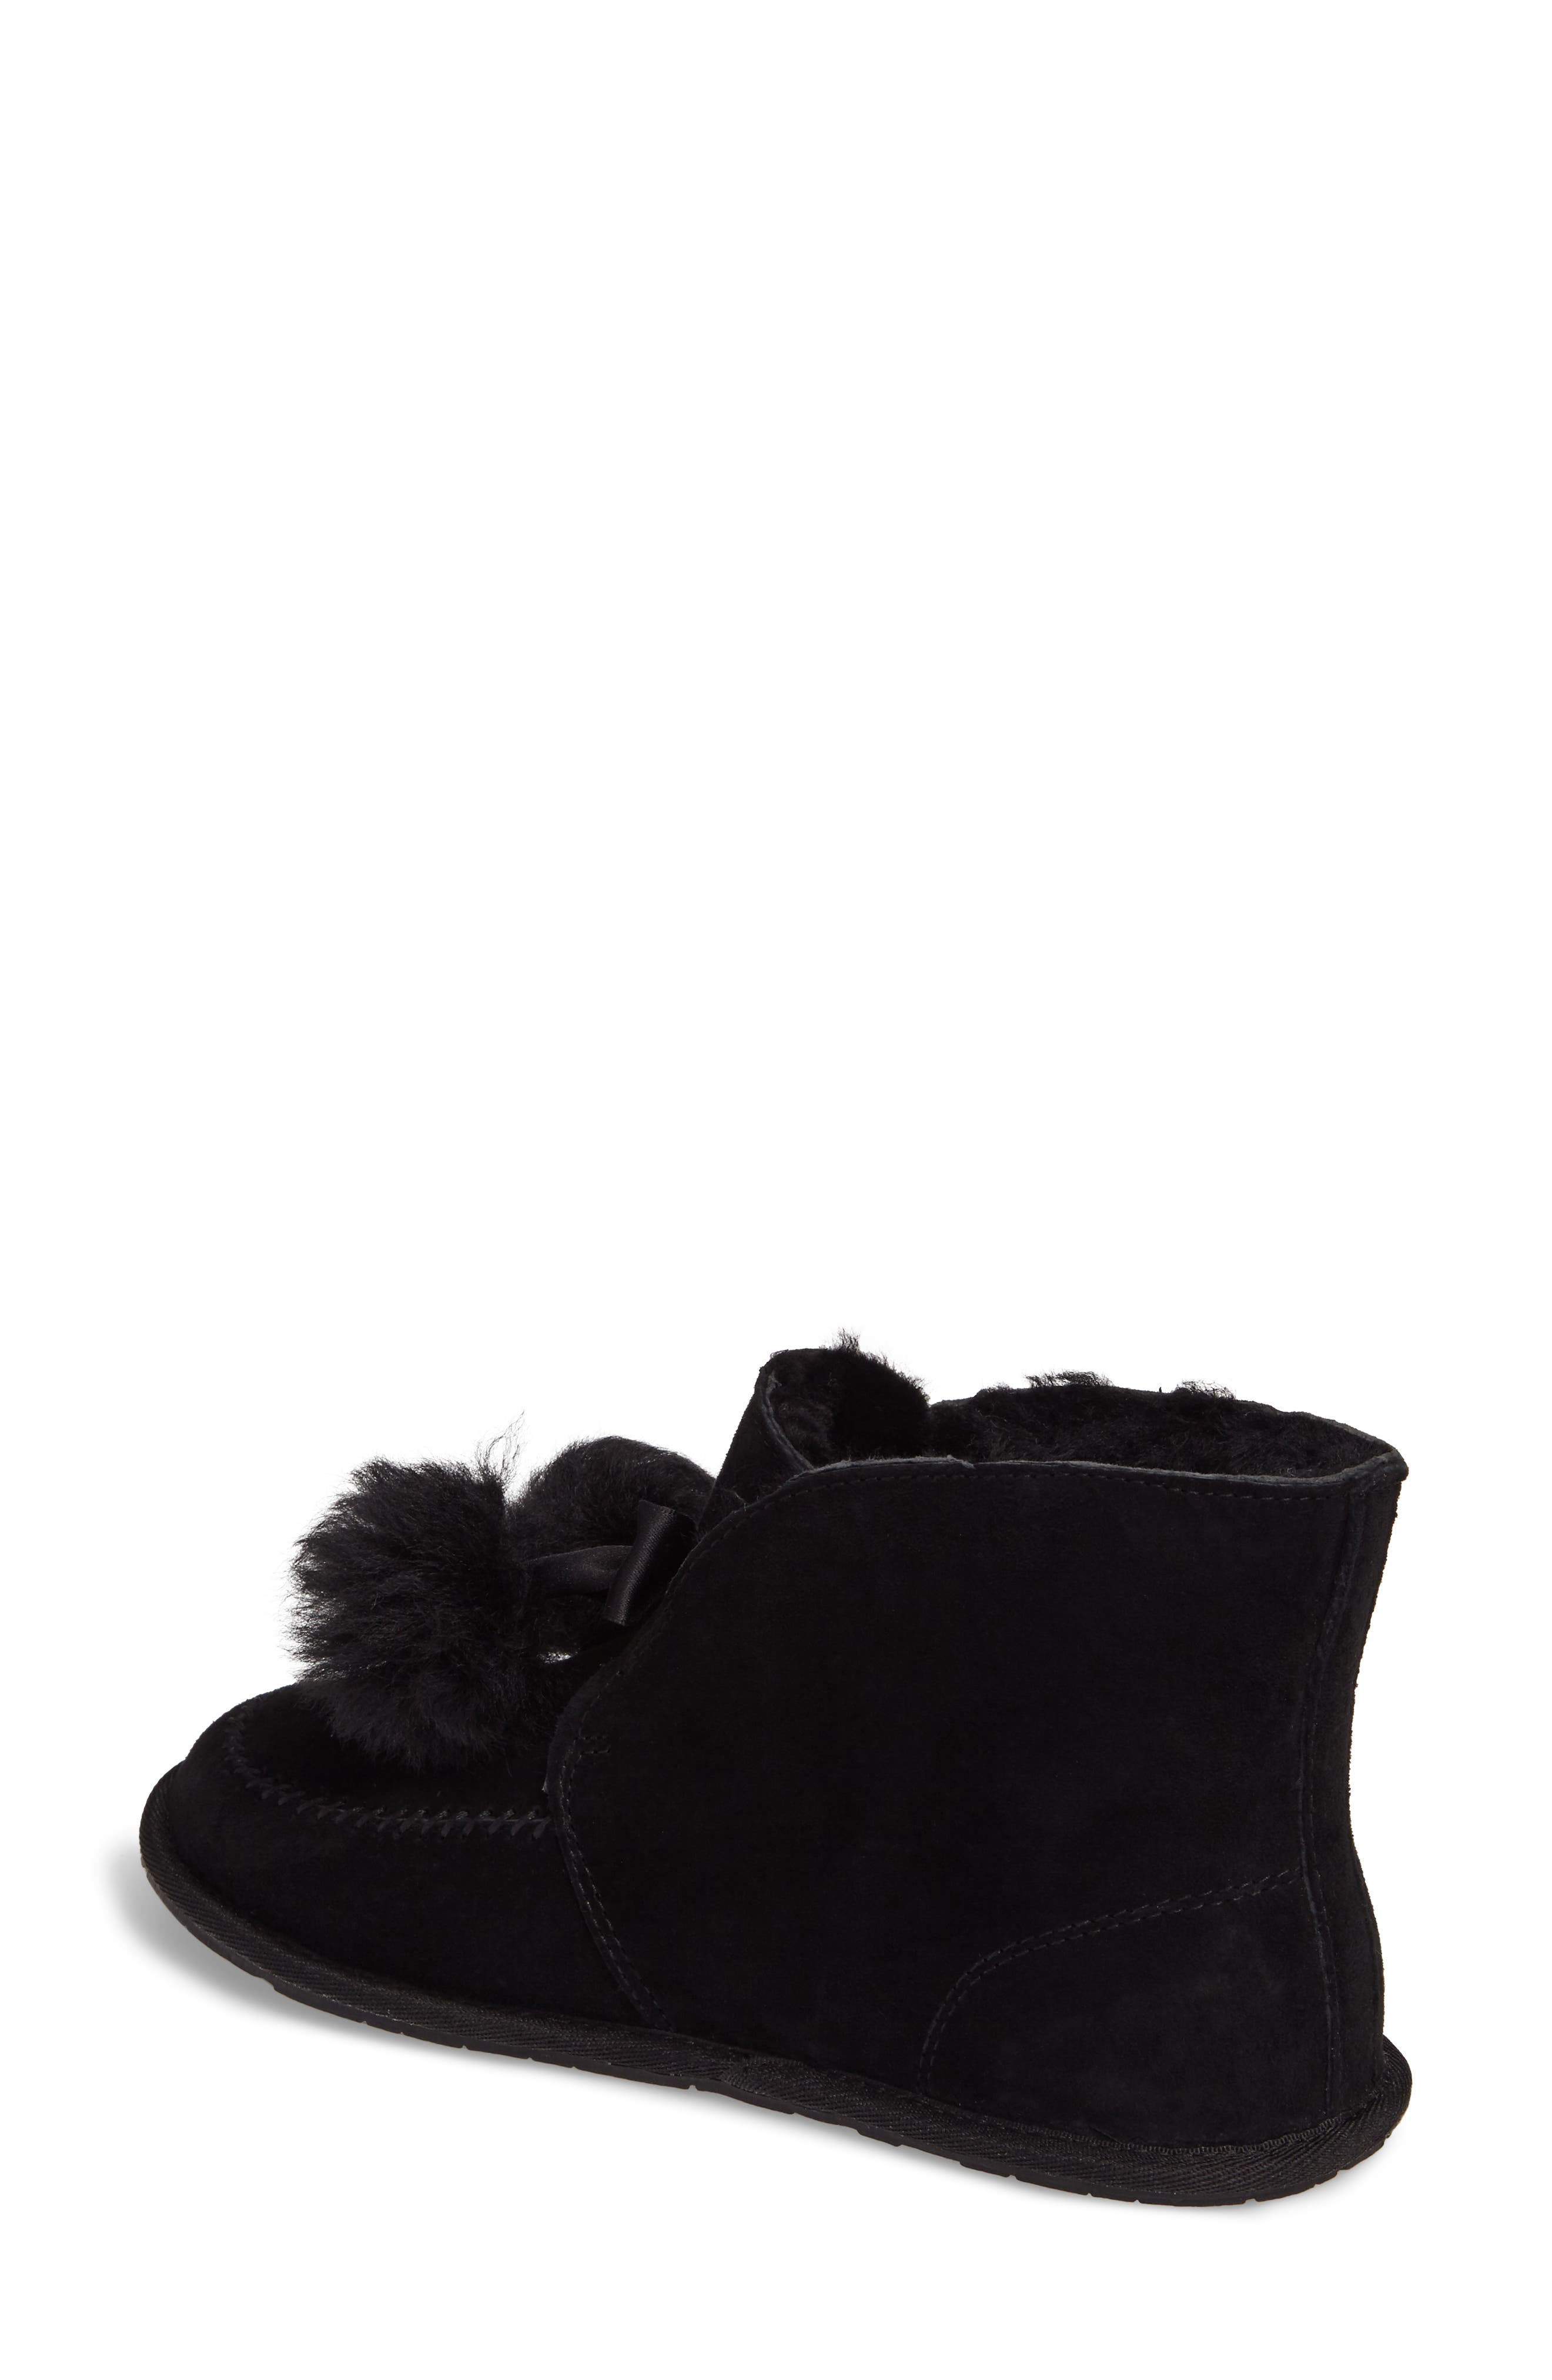 Kallen Silkee<sup>™</sup> Suede Slipper,                             Alternate thumbnail 2, color,                             001